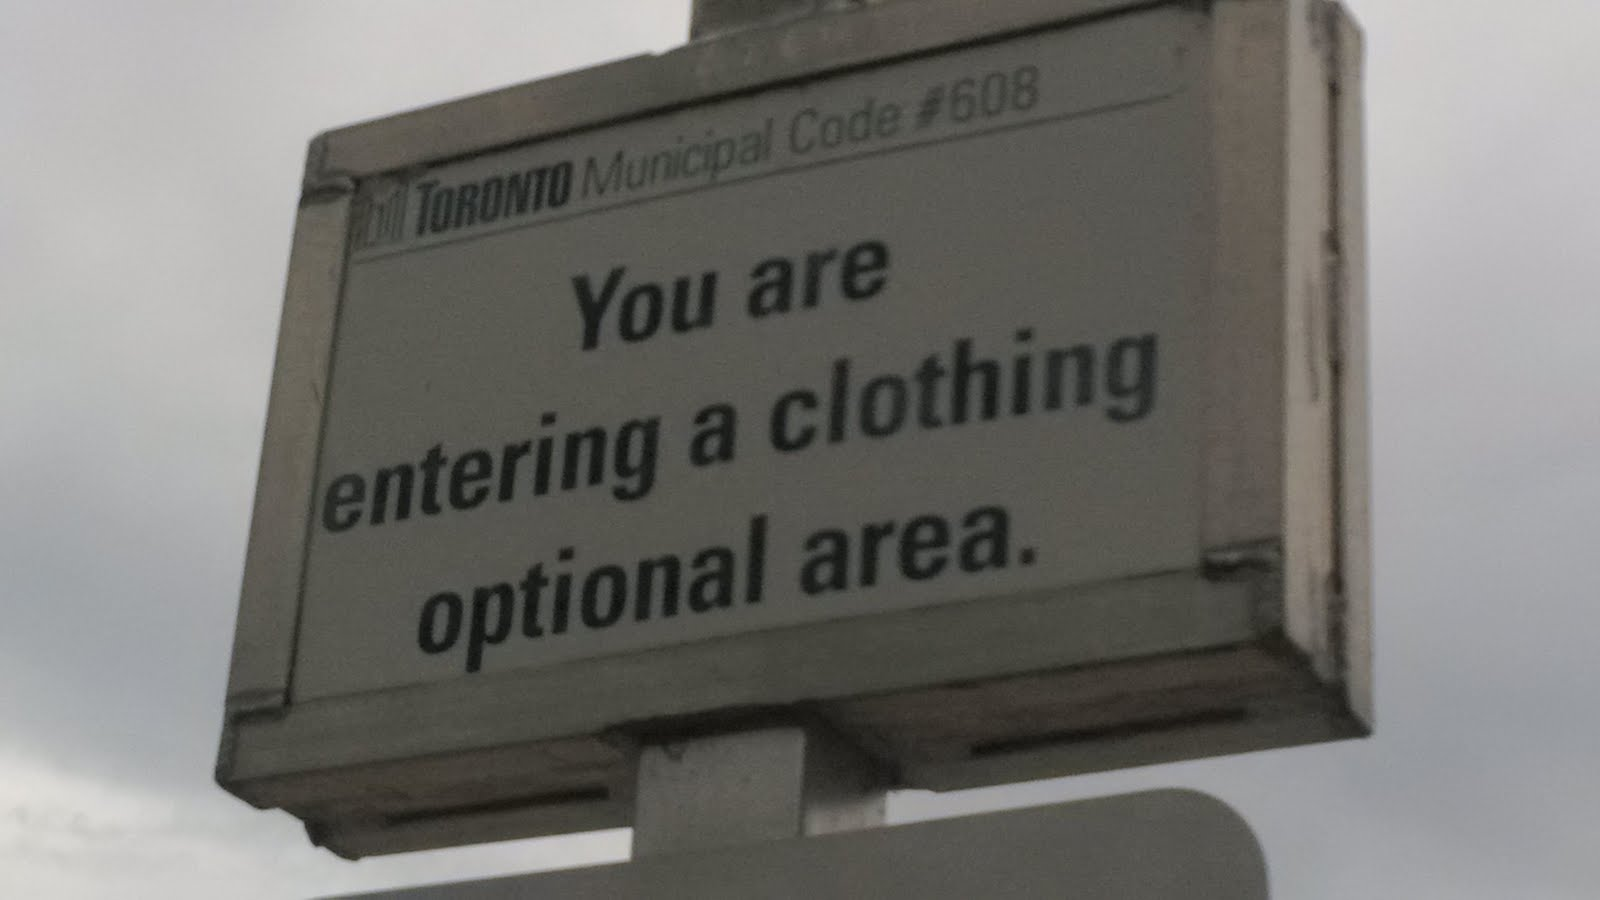 You are entering a clothing optional area